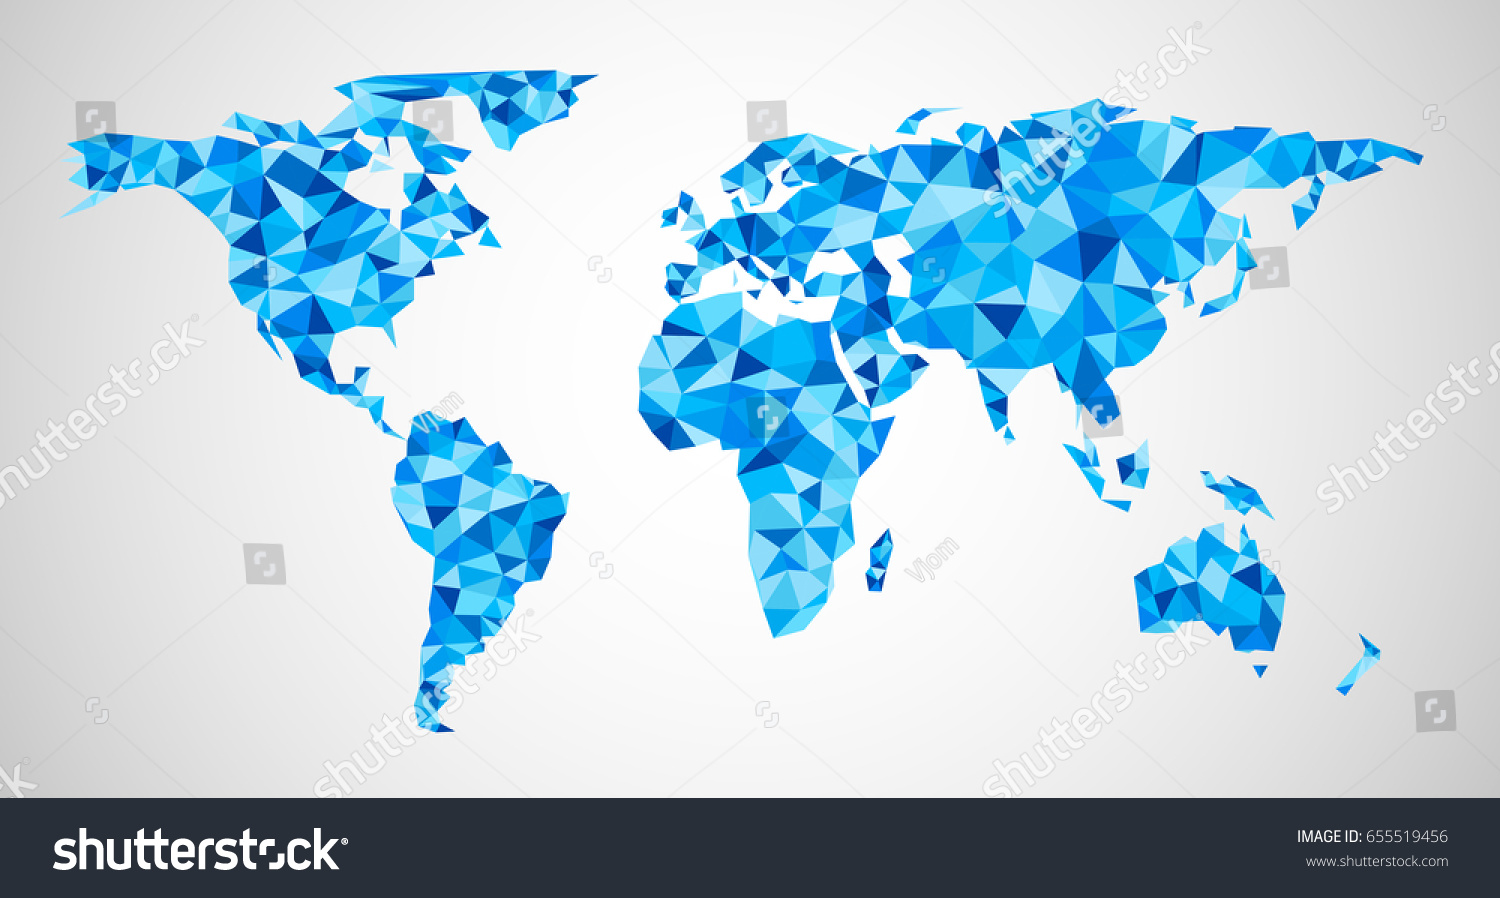 Blue mosaic geometric abstract world map stock vector 655519456 blue mosaic geometric abstract world map vector illustration gumiabroncs Images